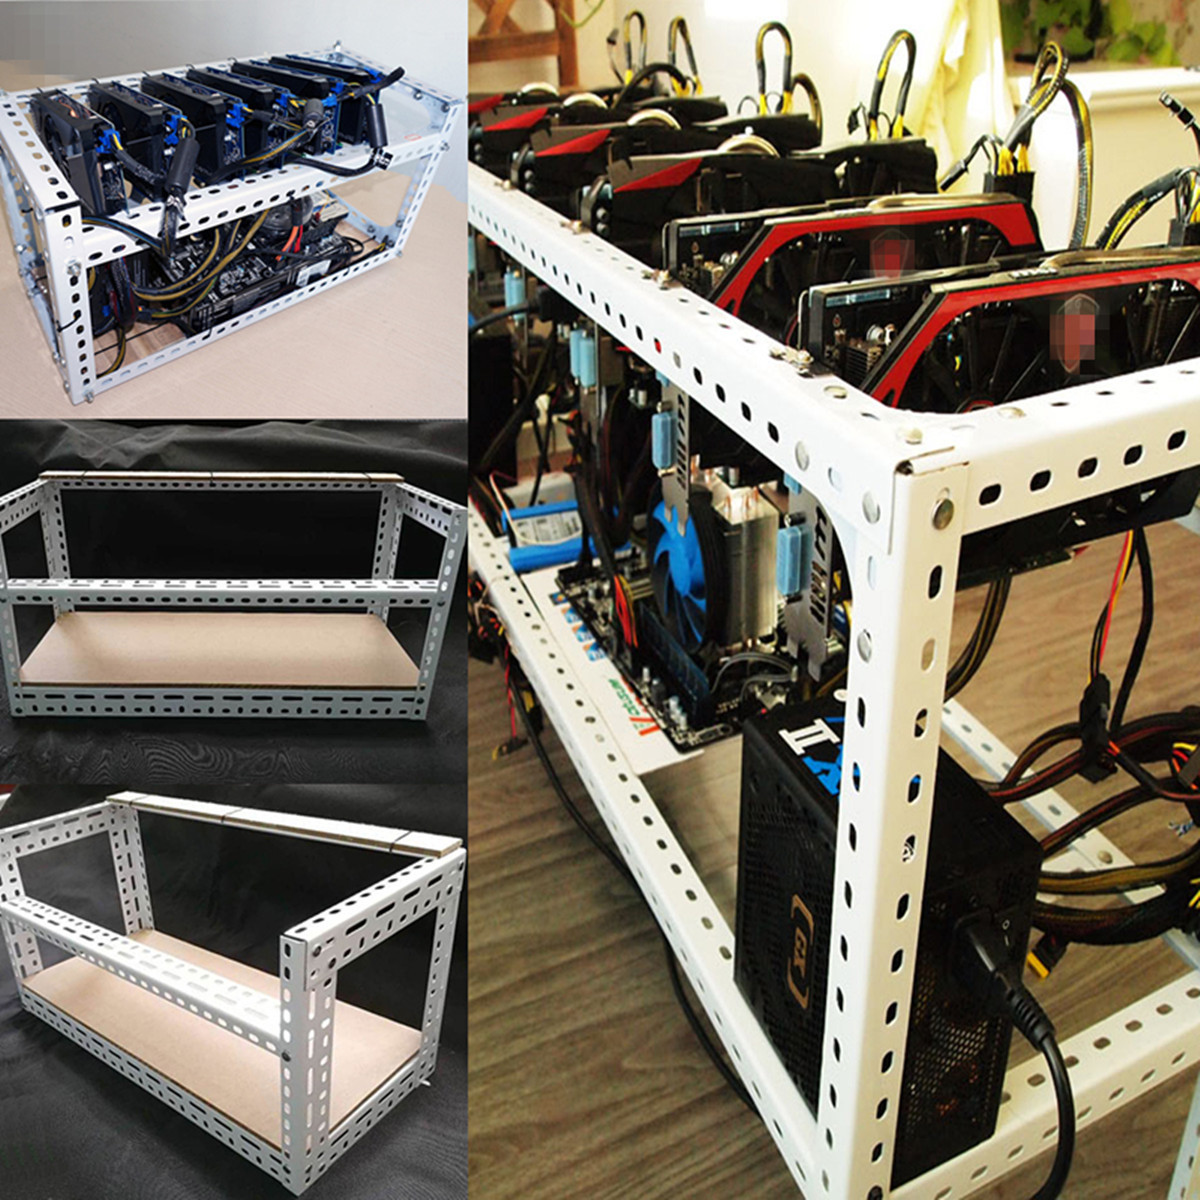 Best ideas about DIY Mining Rig Frame . Save or Pin DIY Aluminum Frame For 4 GPU Mining Crypto currency Mining Now.